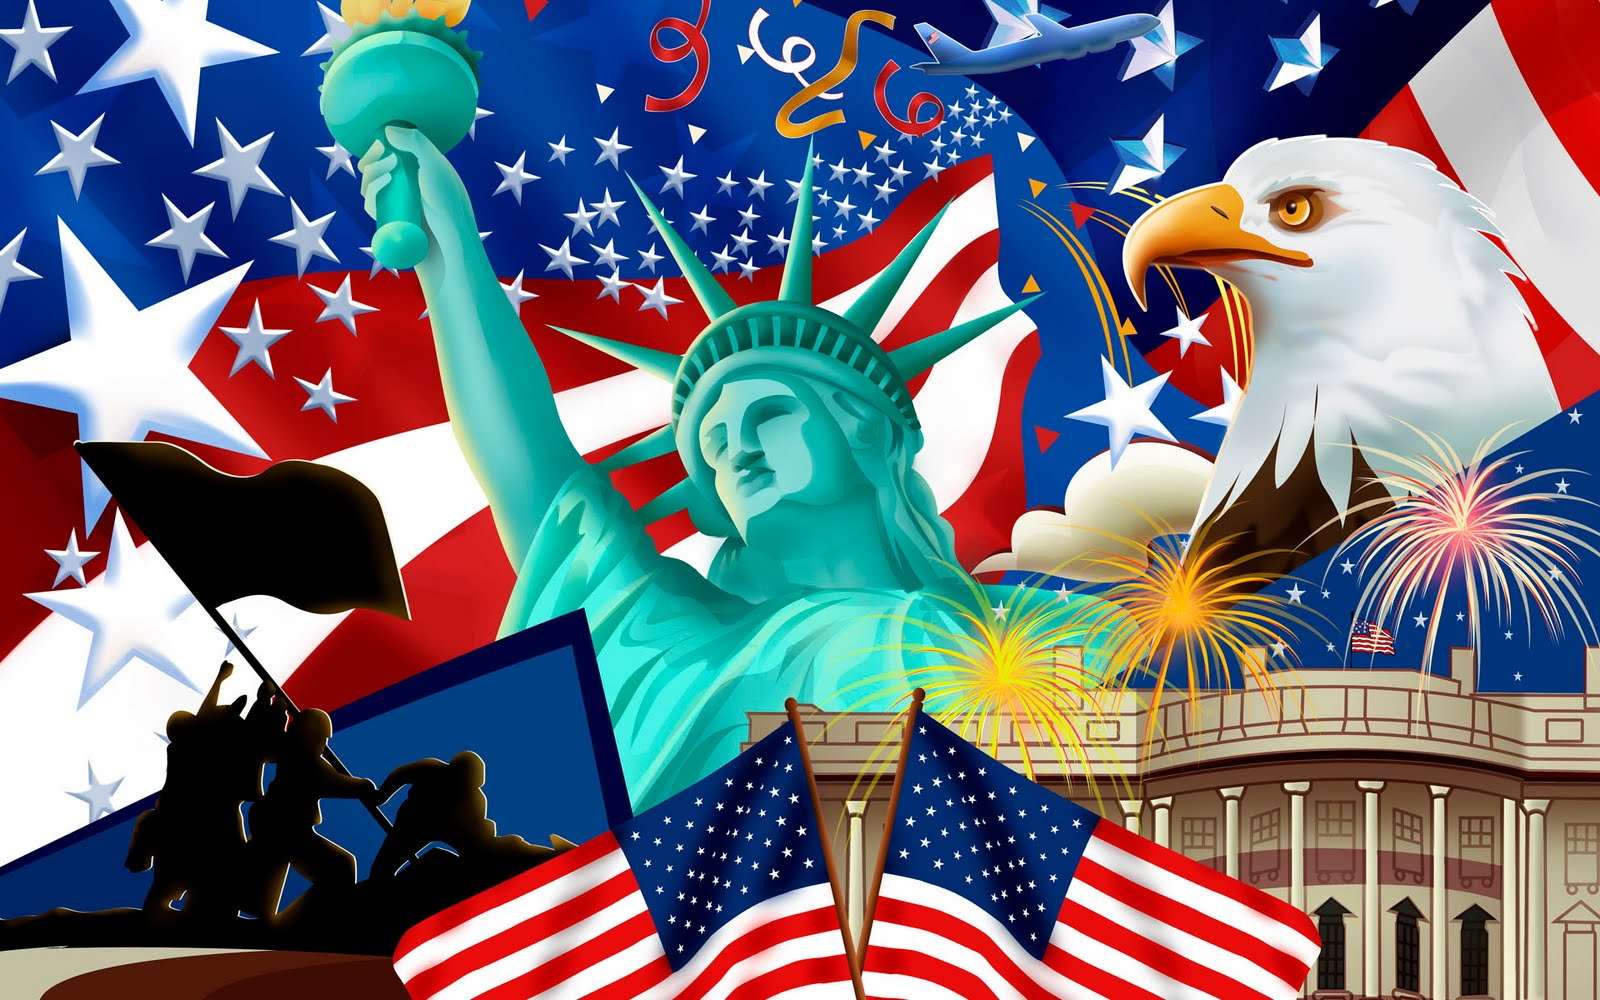 american culture There is hardly any political question in the united states that sooner or later does not turn into a judicial question from that, the obligation that the parties find in their daily polemics to borrow ideas and language from the judicial system.